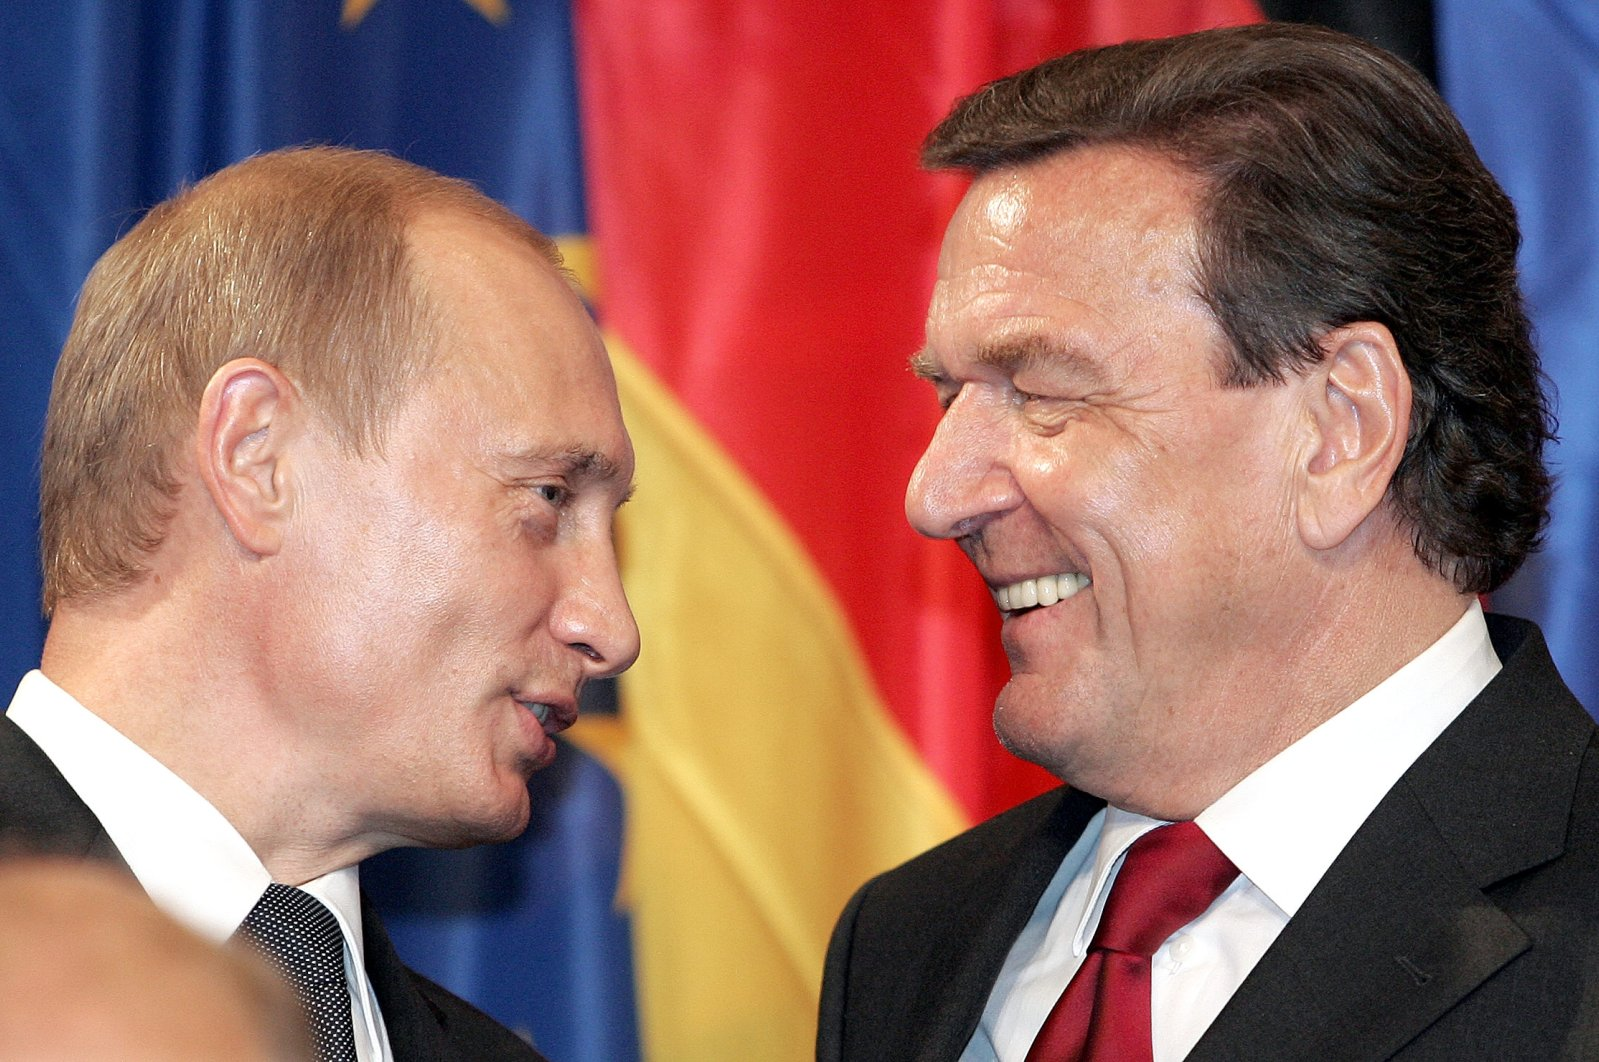 This file photo shows then-German Chancellor Gerhard Schroeder (R) and Russian President Vladimir Putin during a press conference in Berlin, Sept. 8, 2005. (AFP Photo)